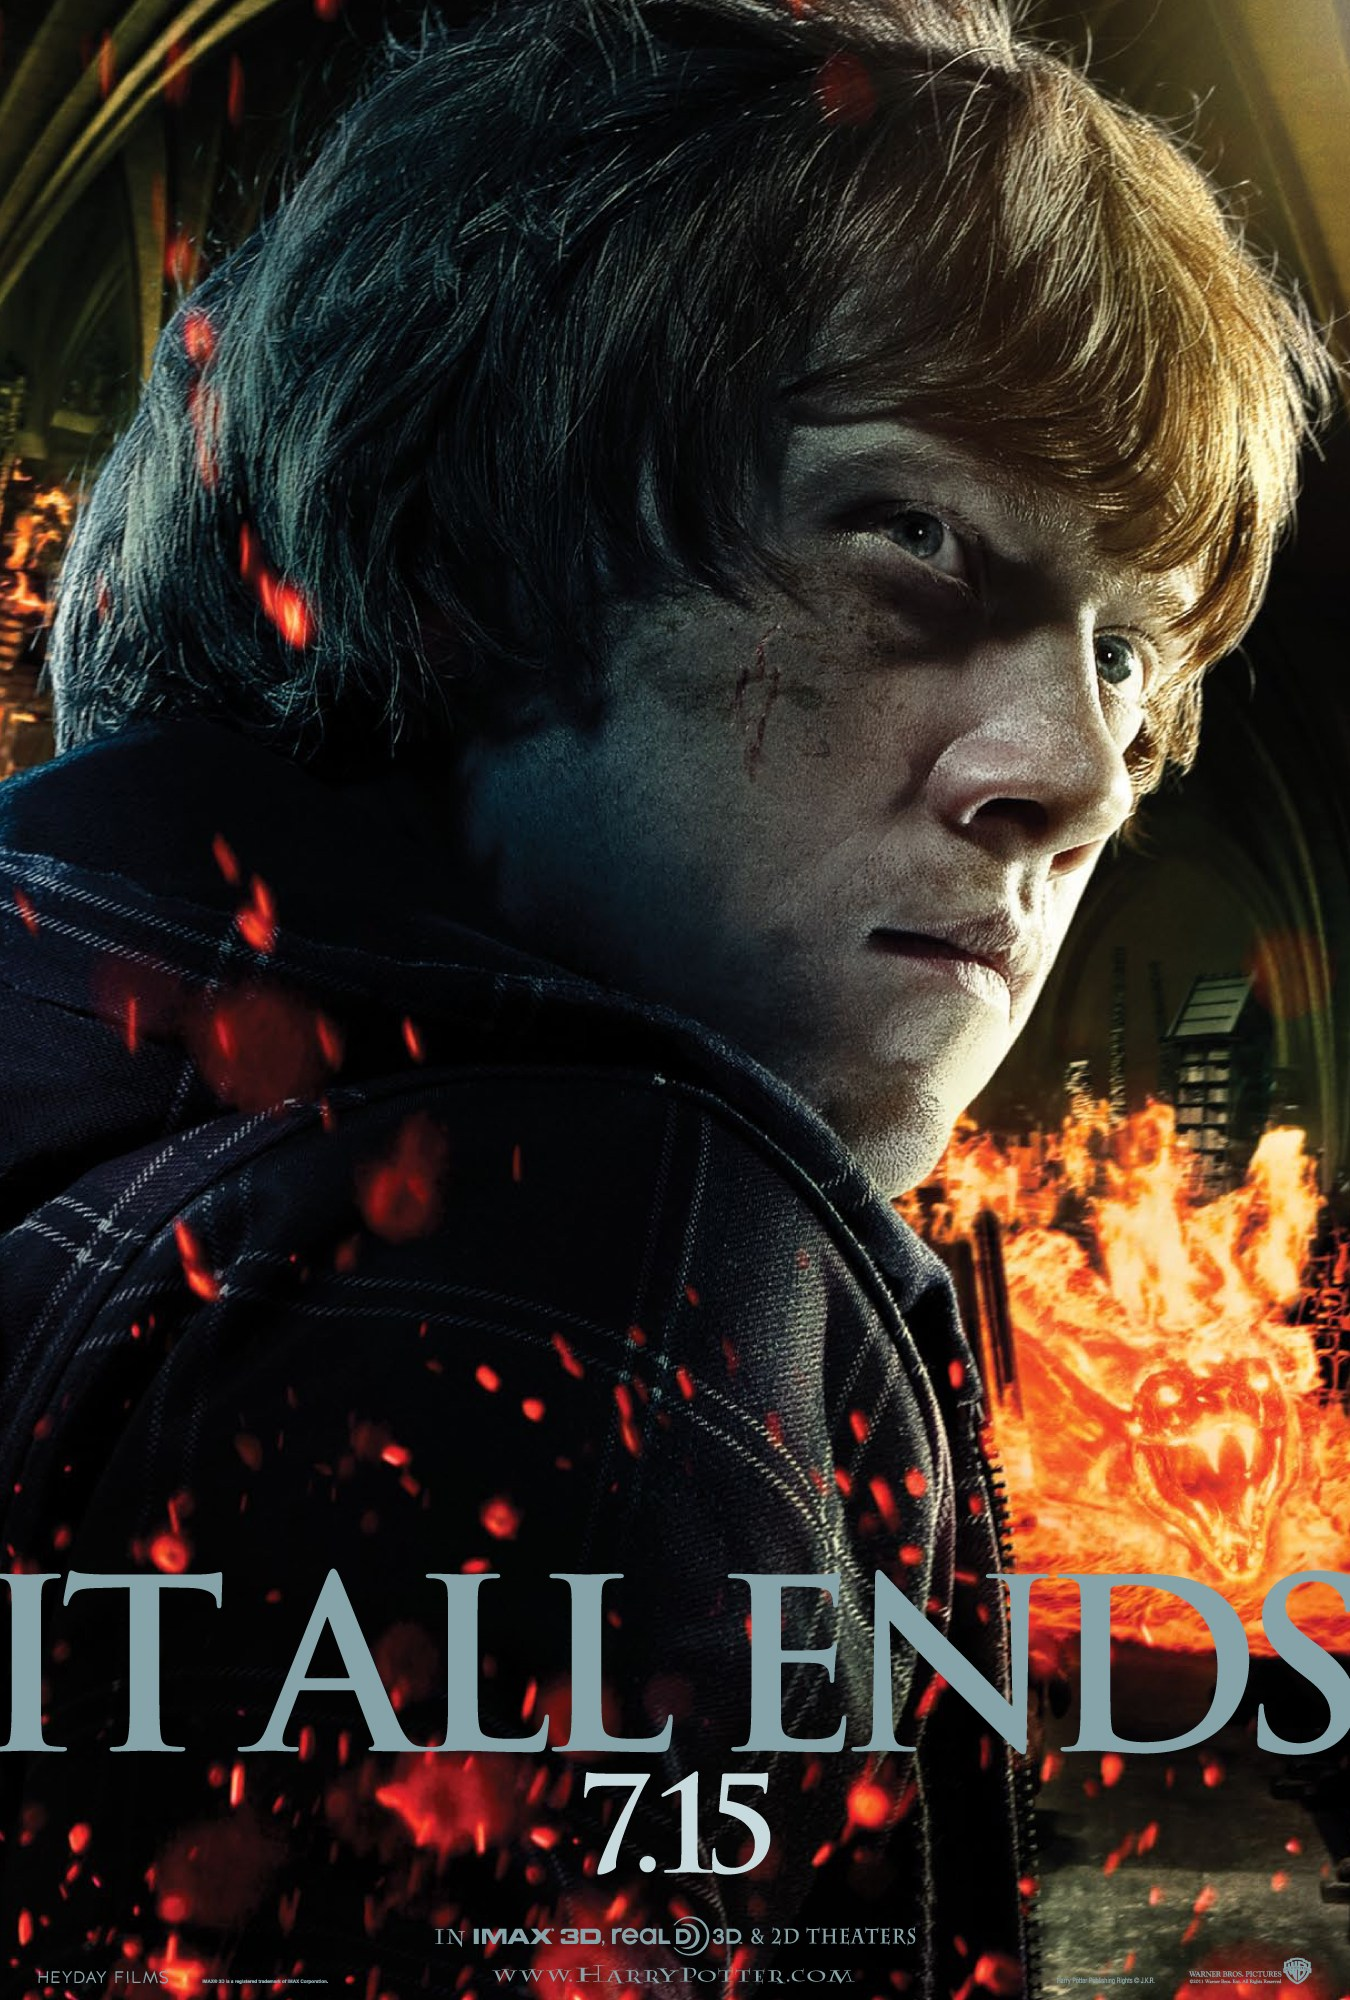 'Deathly Hallows: Part 2' Ron poster #2